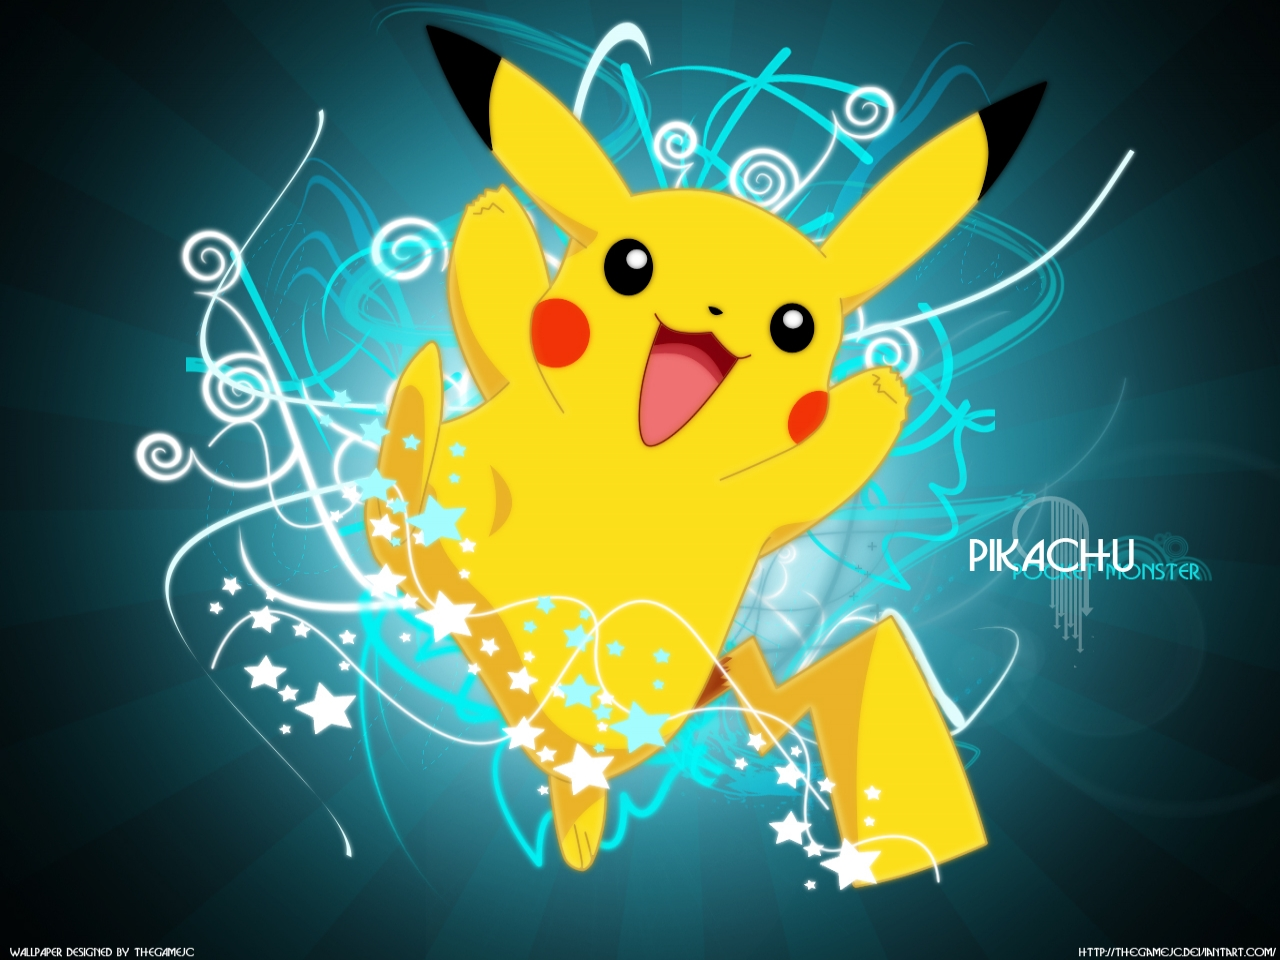 HD Wallpaper For Pictures Spectacular Pokmon Wallpapers For Your PC 1280x960